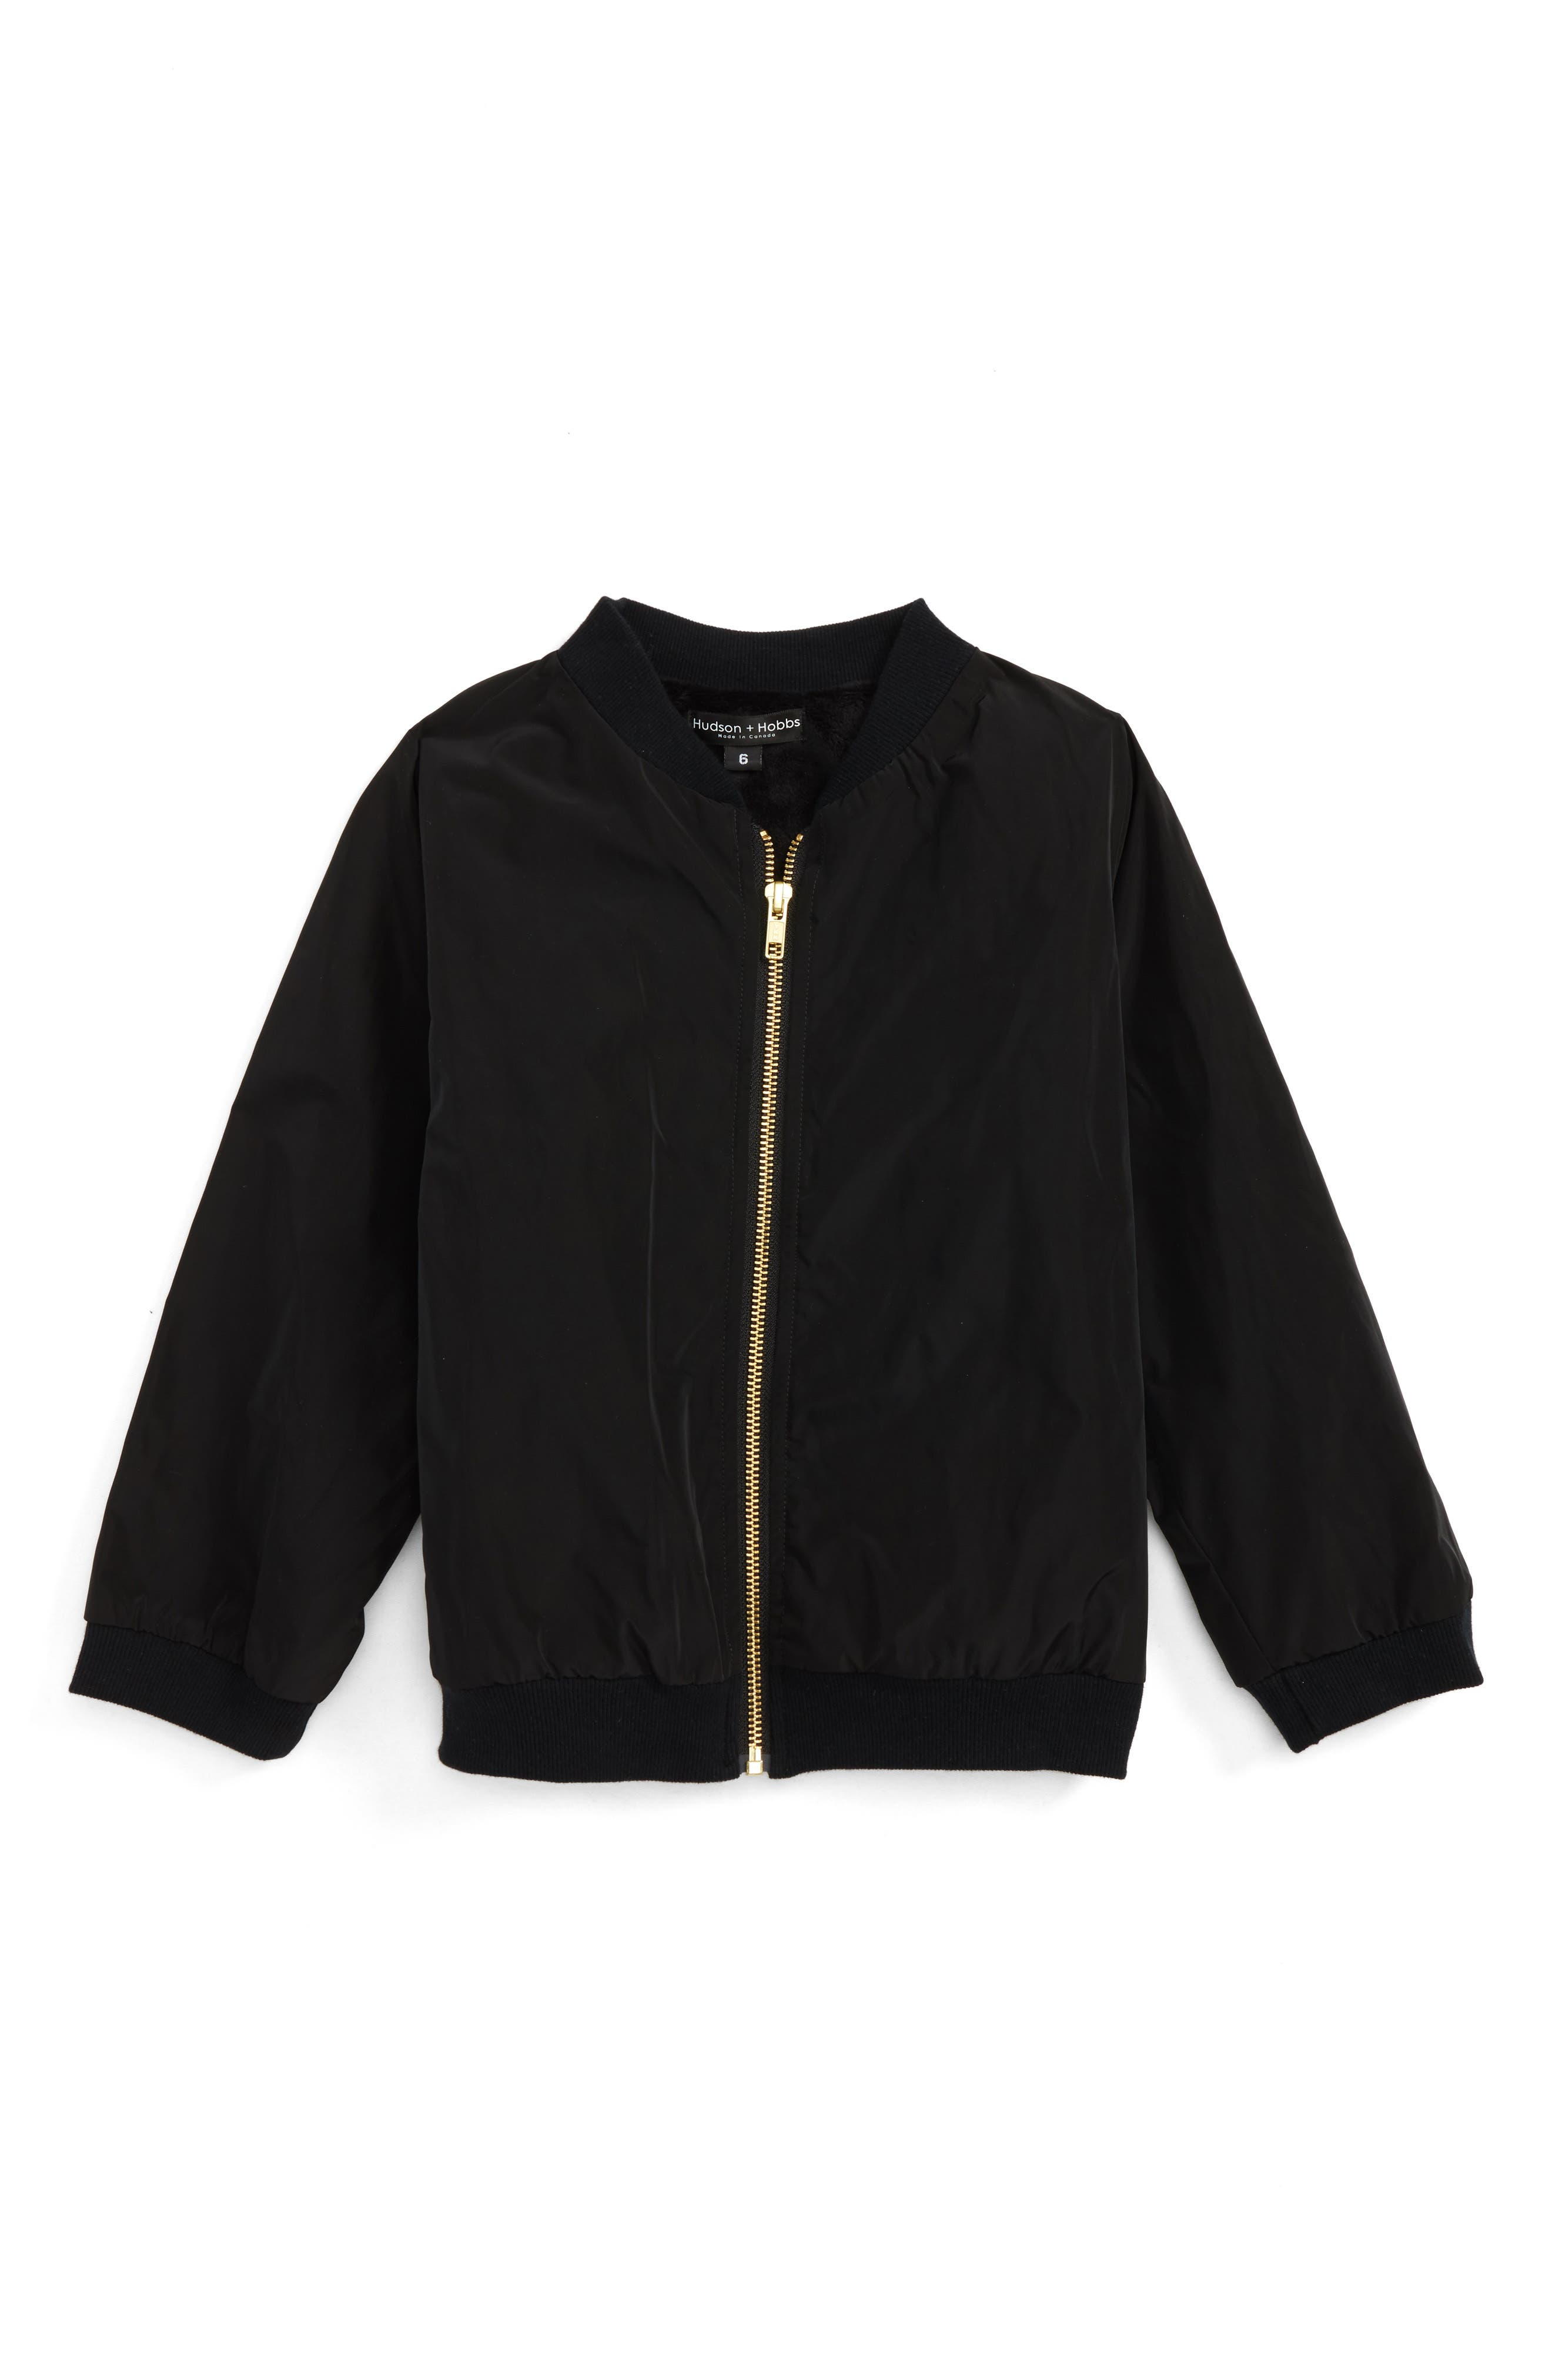 Cozy Waterproof Bomber Jacket,                             Main thumbnail 1, color,                             Black